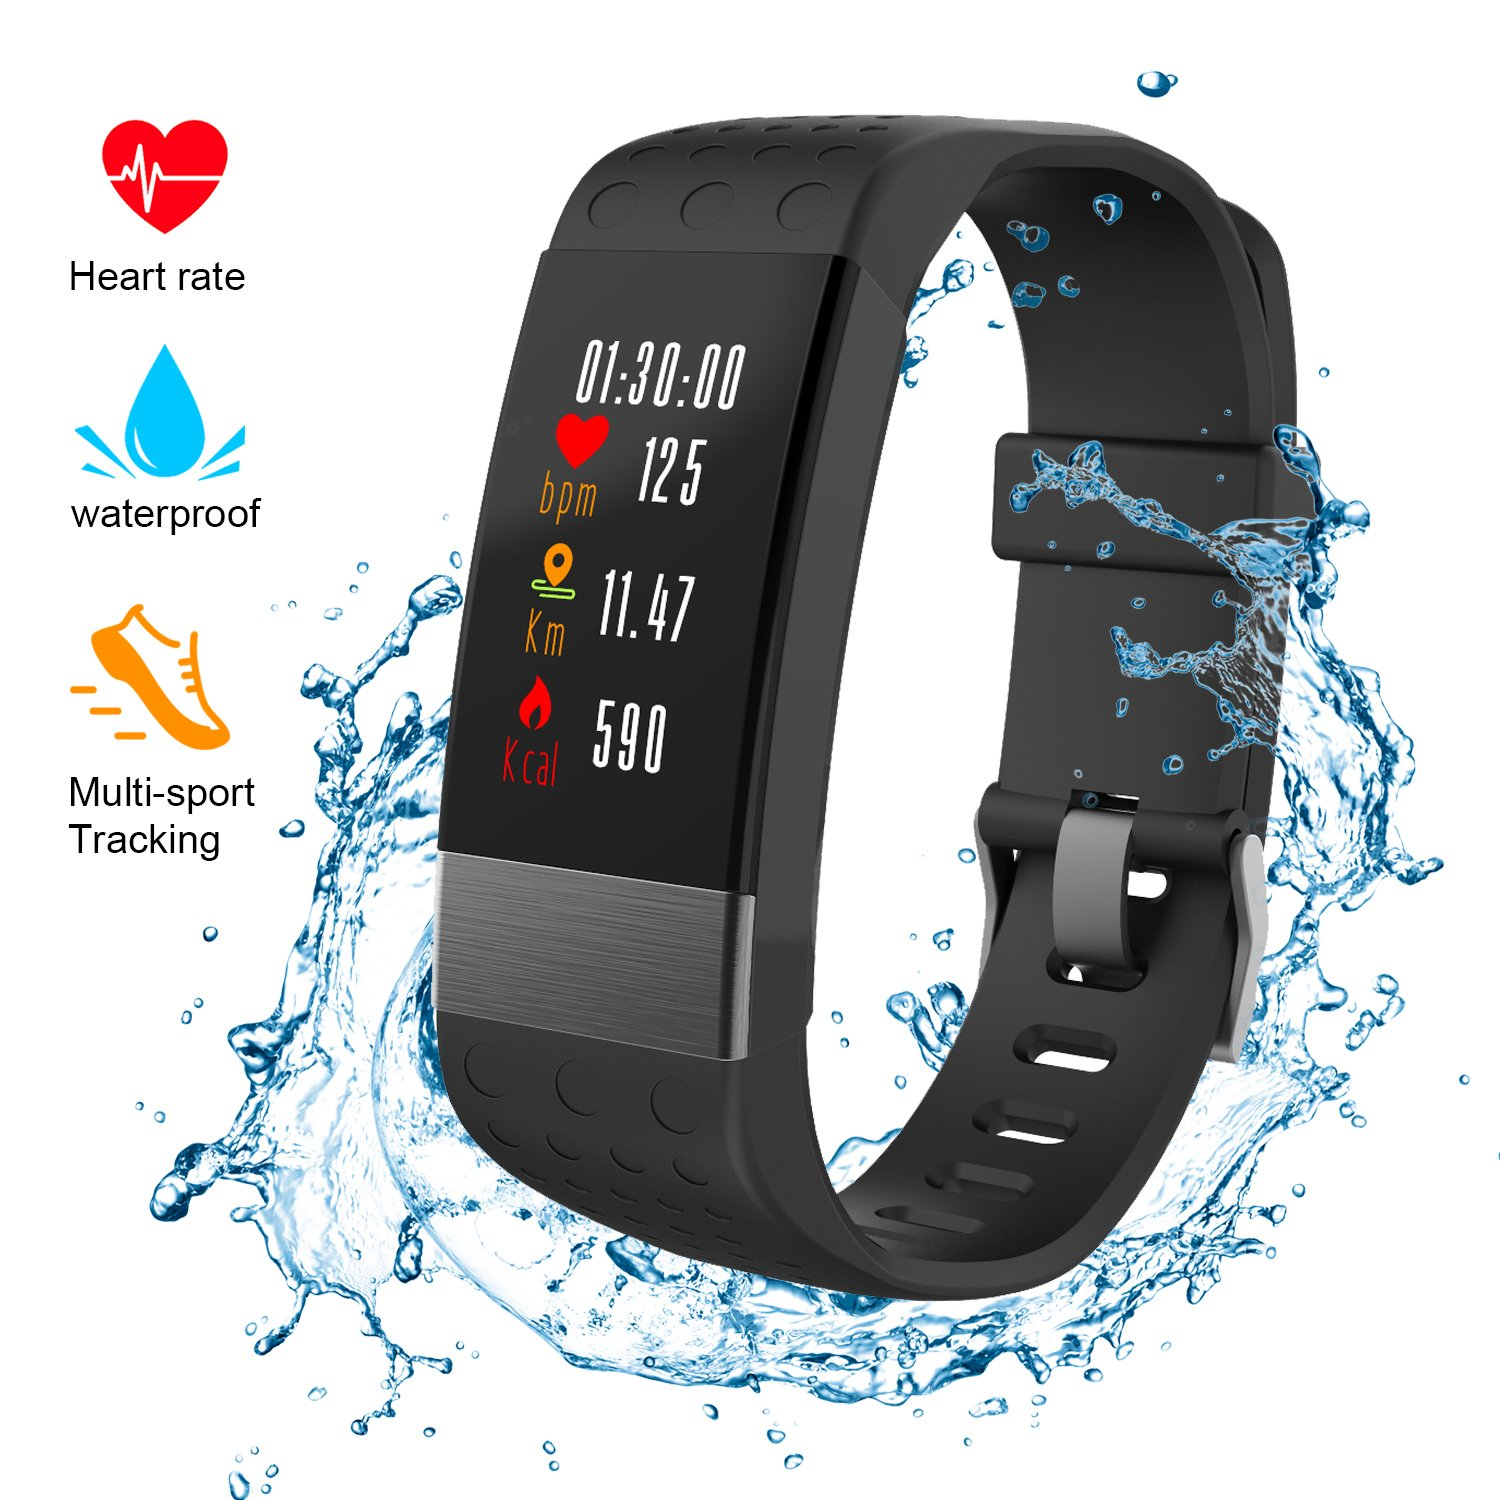 NickSea Fitness Tracker, Heart Rate Monitor Color Screen Smart Watch with Sleep Monitor, Step Counter, Message Reminder, IP67 Waterproof Activity Tracker for Android&iOS Smart Phone